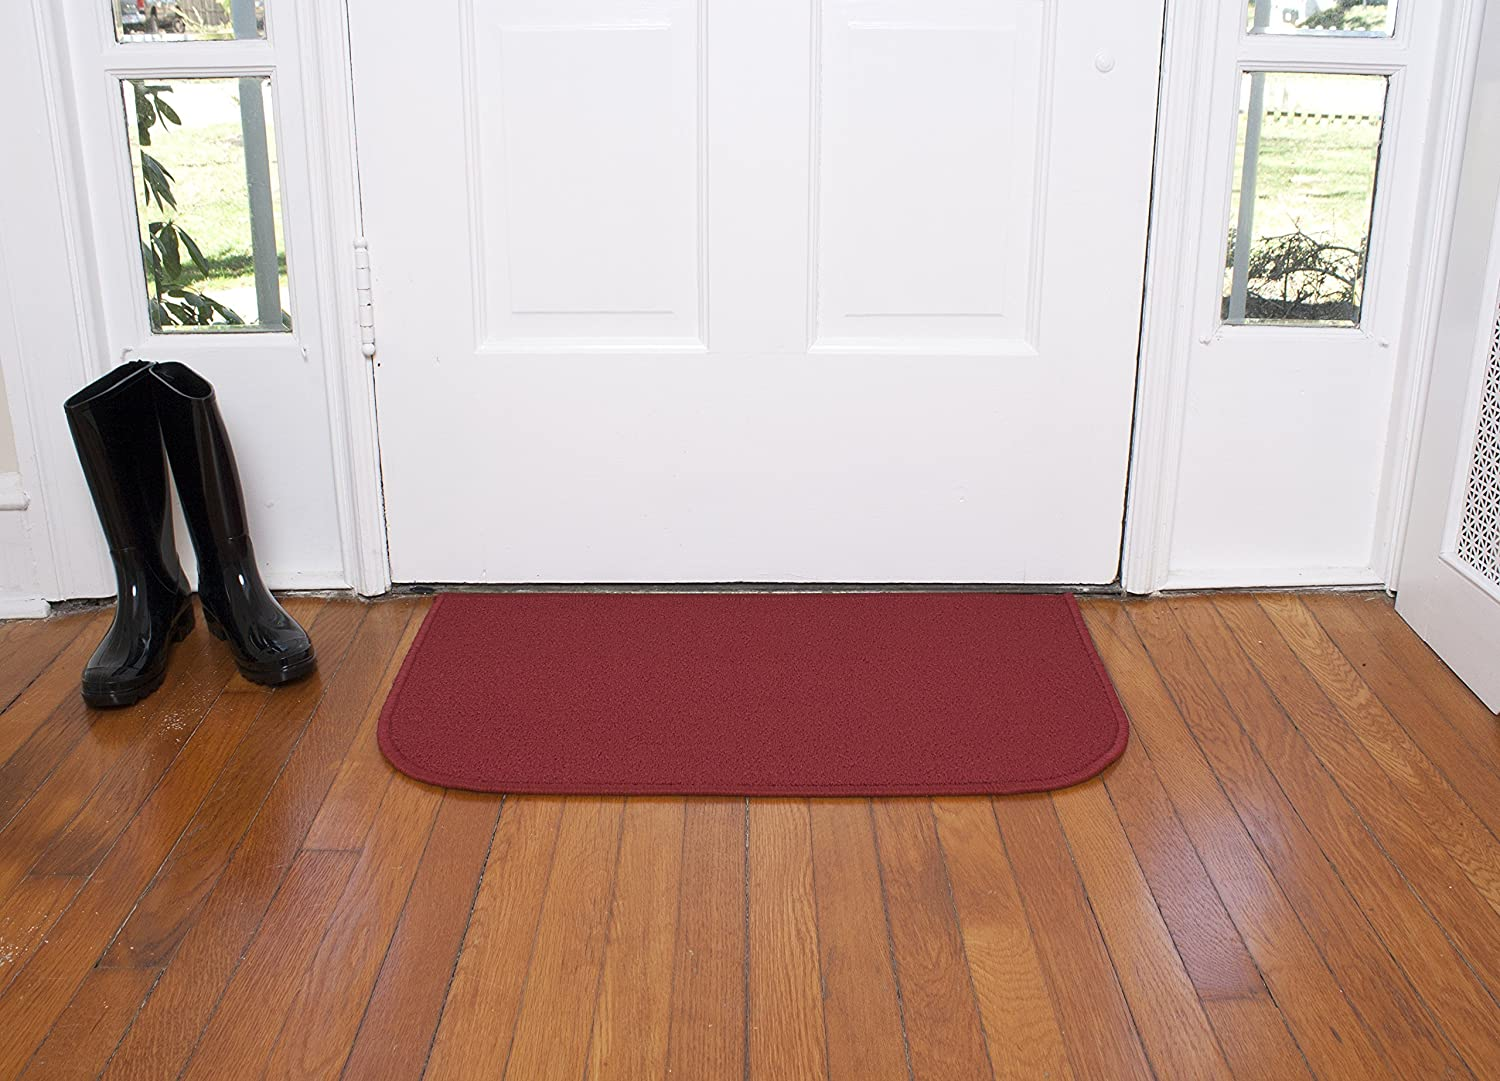 Ritz Accent, Stain Resistant Kitchen Floor Rug, with Non Slip Latex Backing, 18-inch by 30-inch, Red